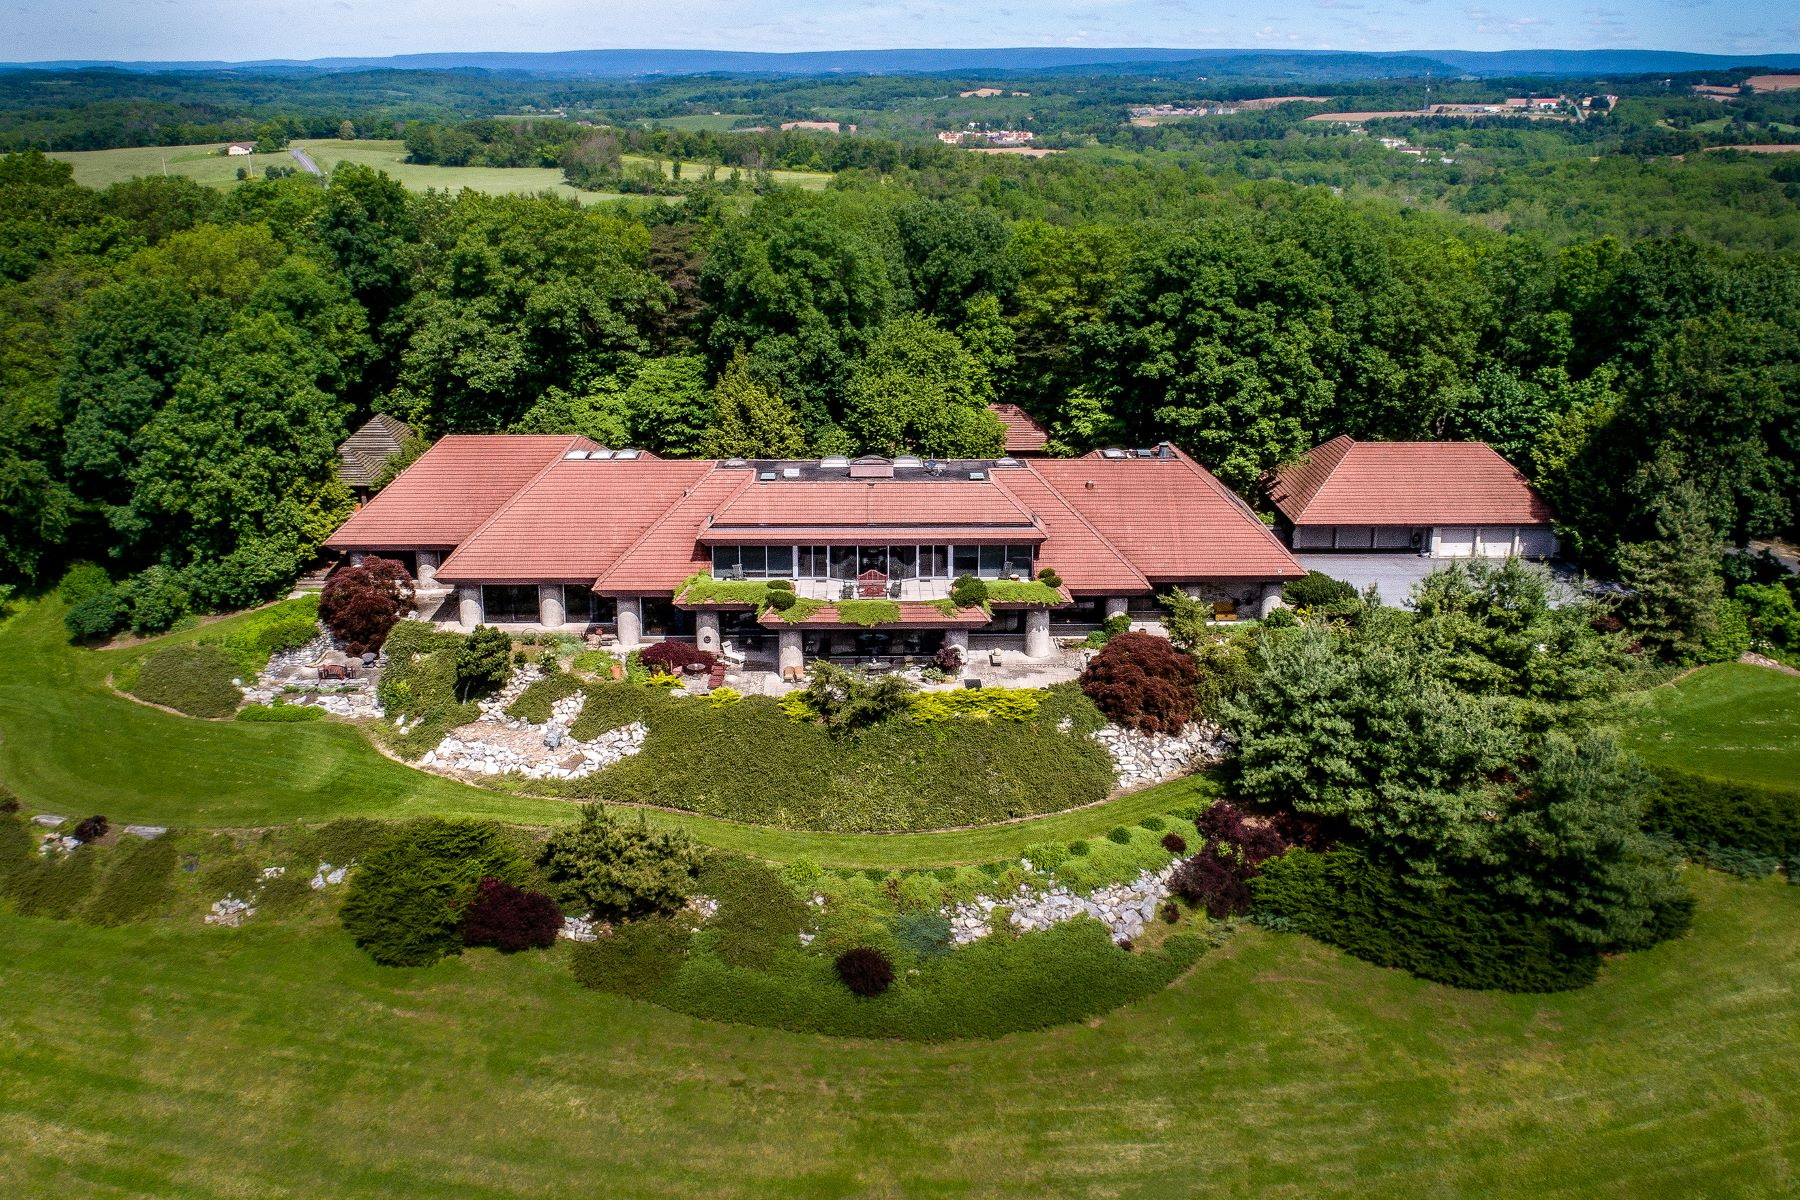 Single Family Homes for Sale at Modern Hilltop Masterpiece 205 SWEITZER RD, Sinking Spring, Pennsylvania 19608 United States